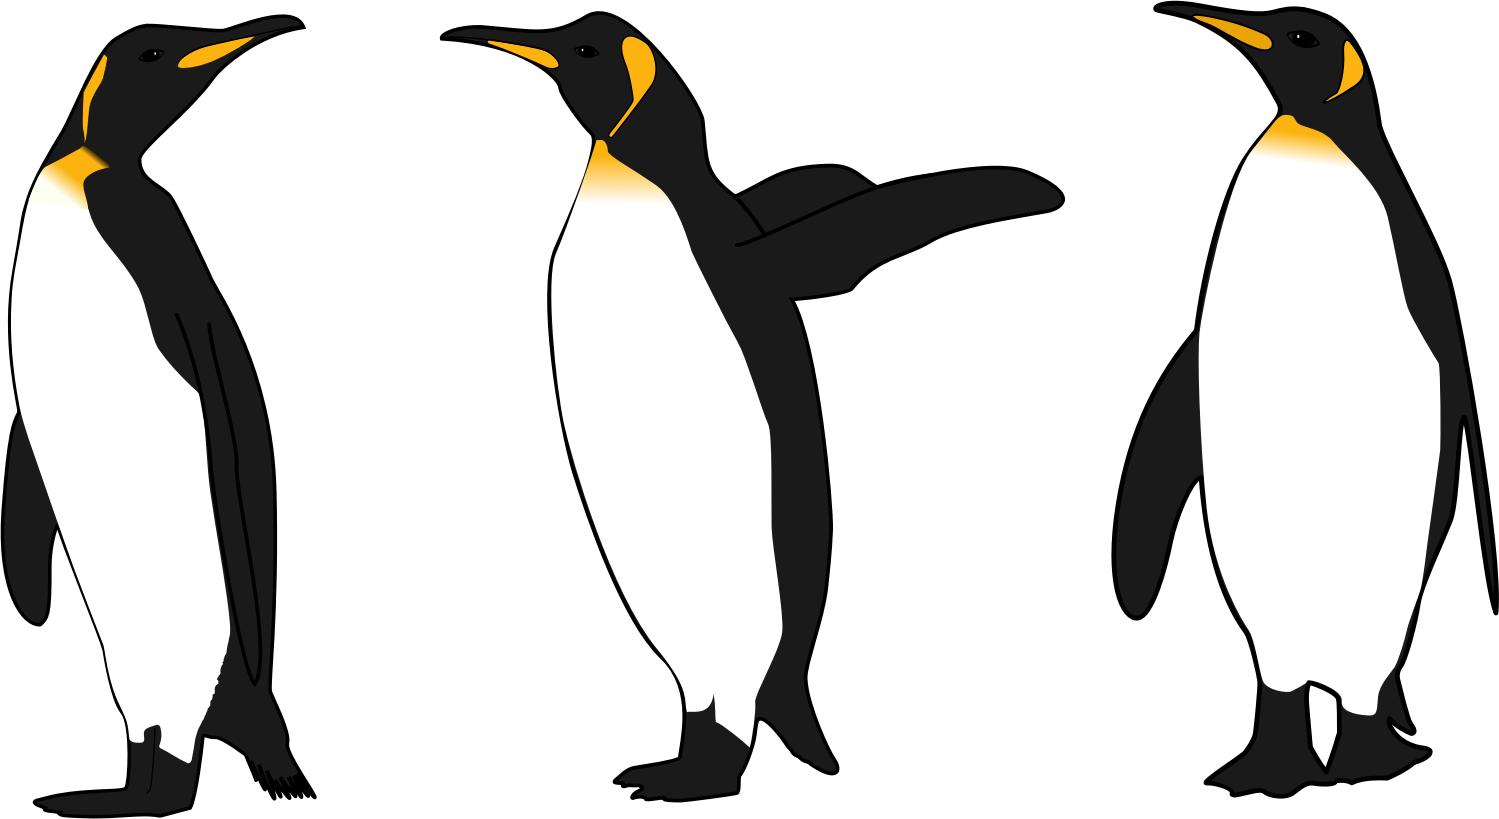 King Penguin clipart #19, Download drawings